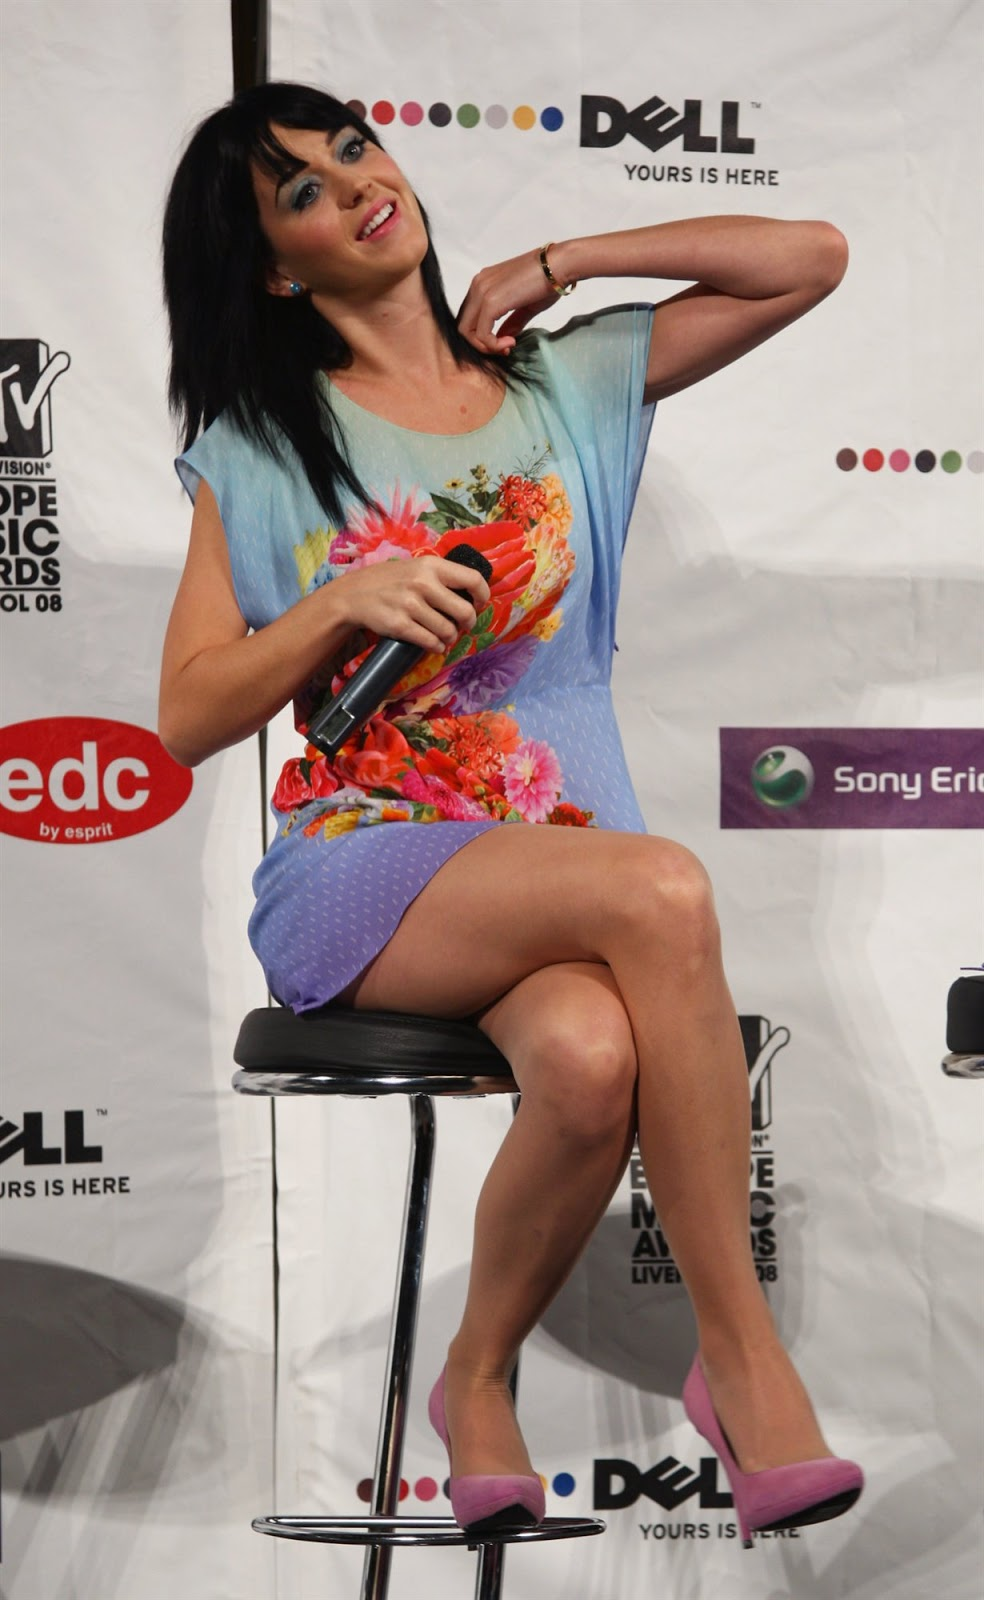 Katy perry date of birth